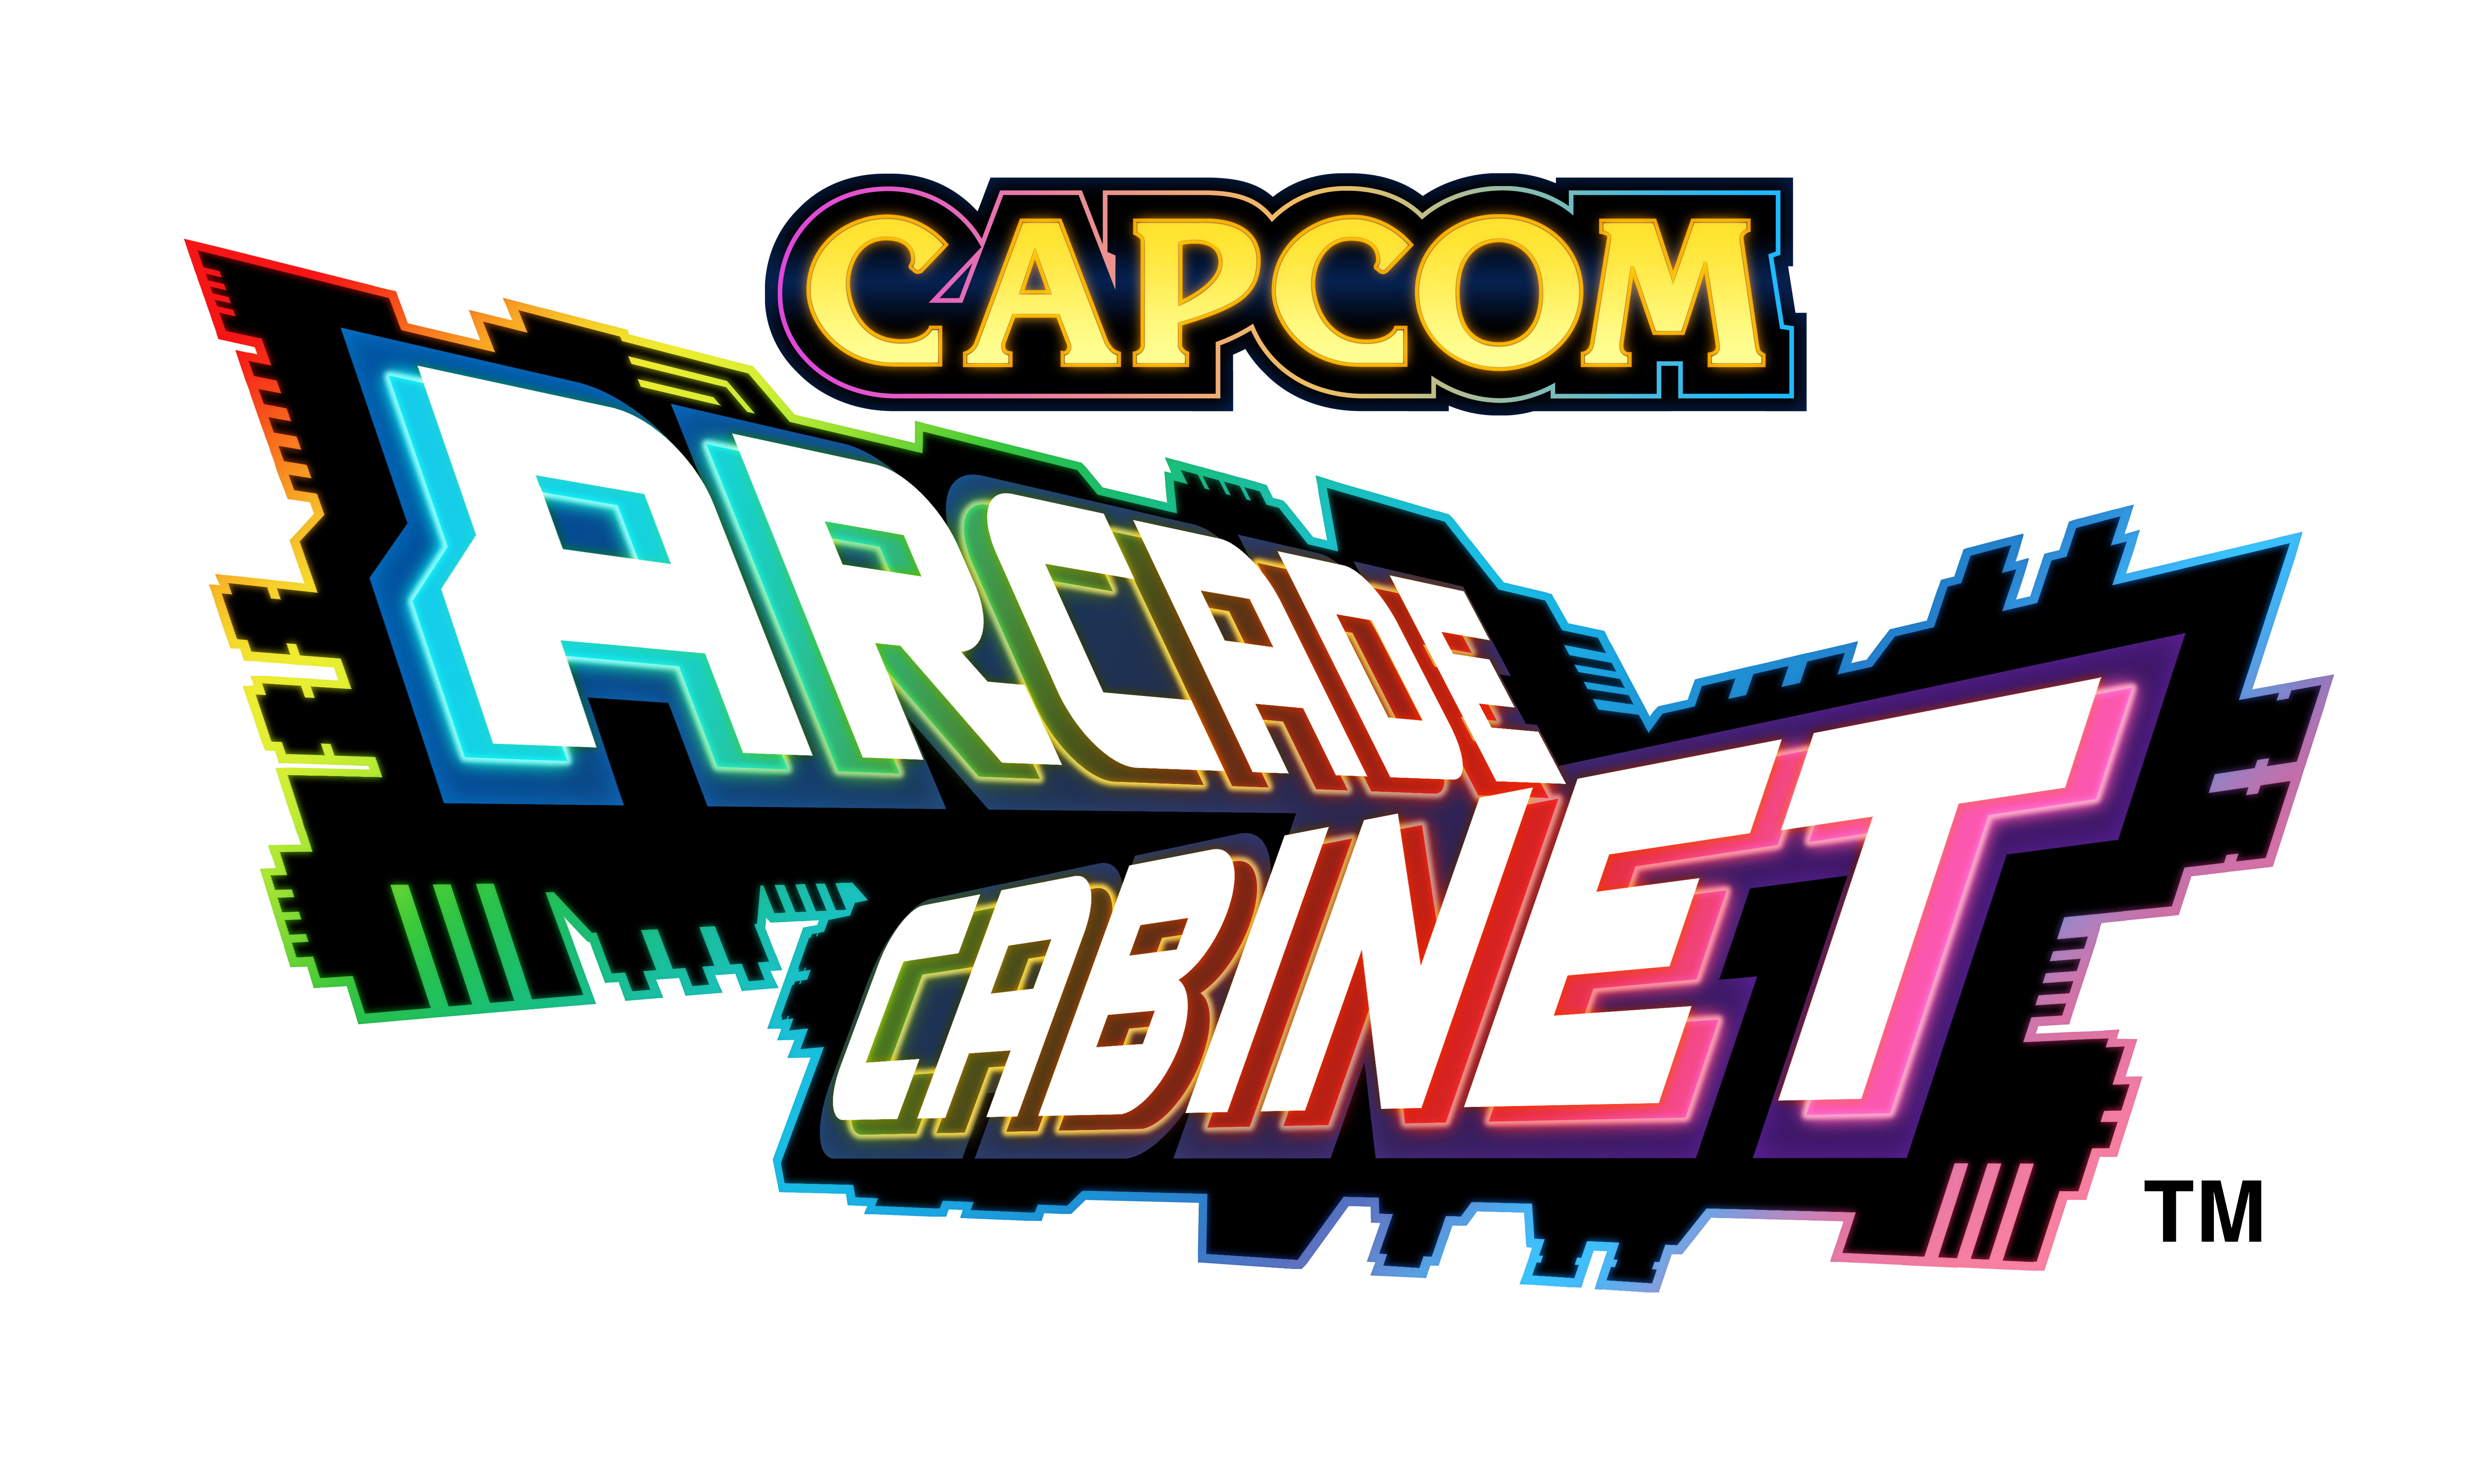 pro fighter arcades Logo photo - 1